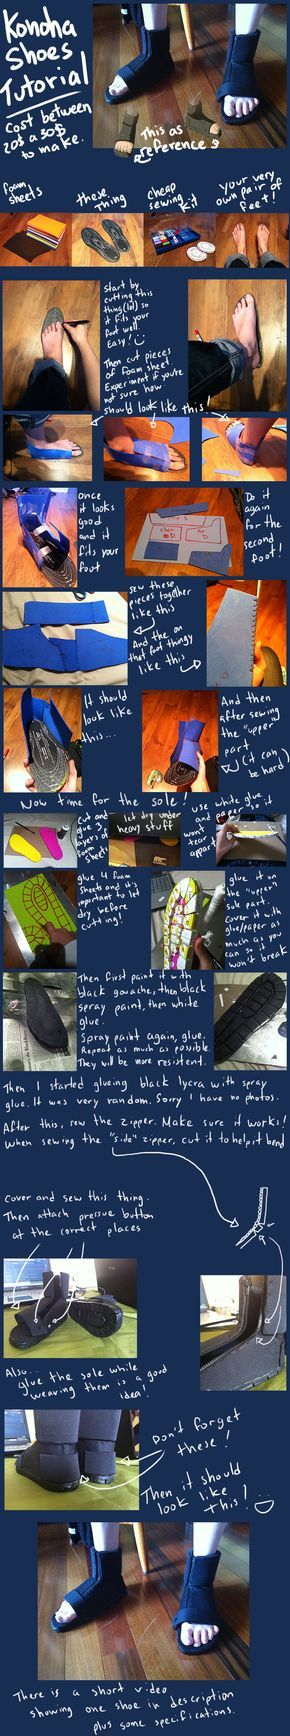 Naruto - Konoha Shoes Tutorial by Aruthe.deviantart.com on @DeviantArt